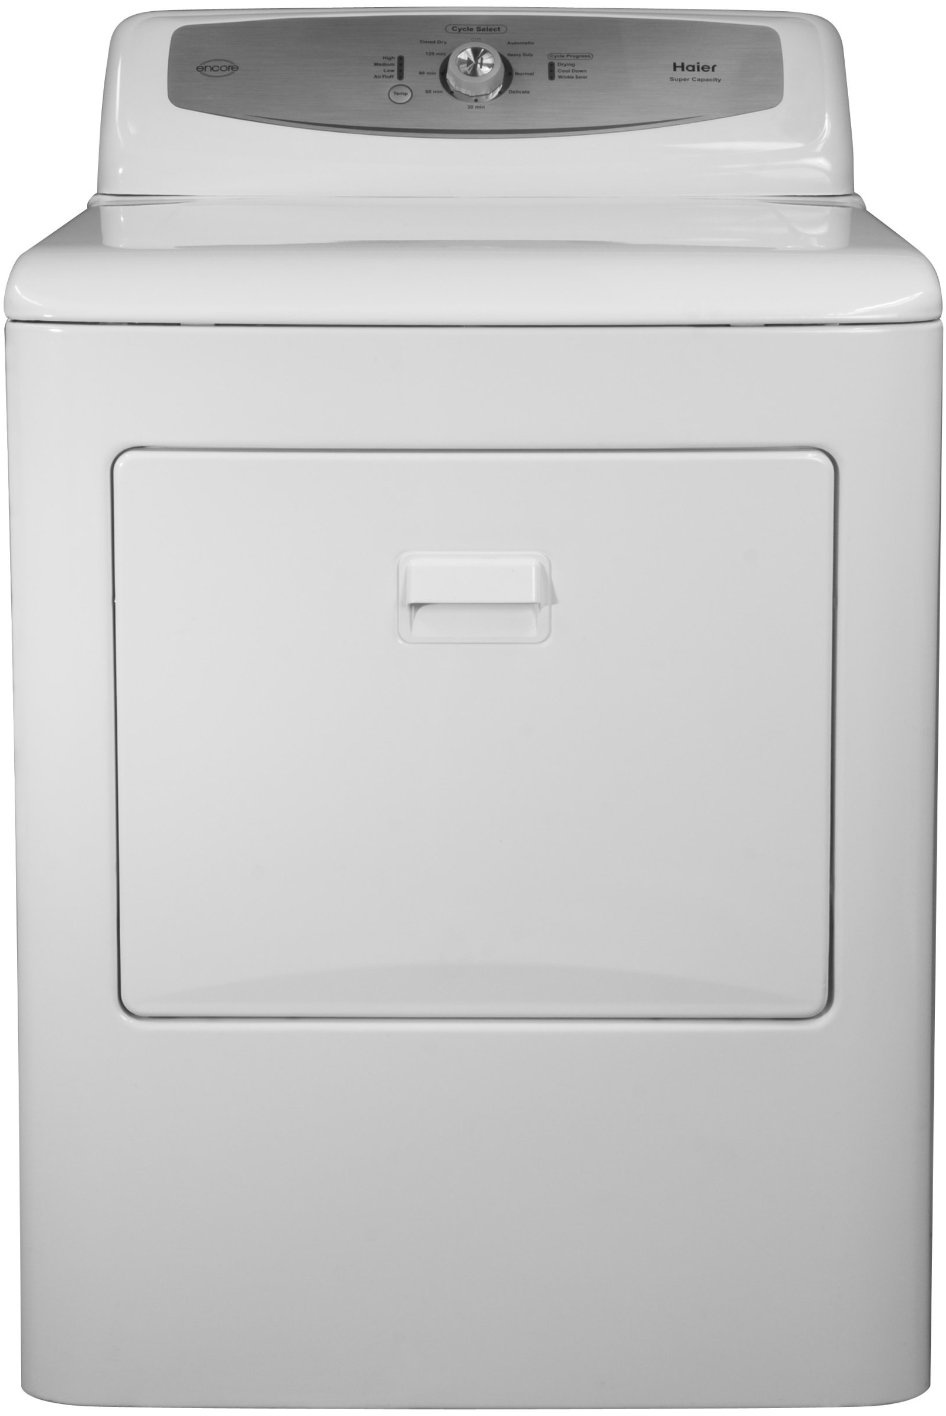 Haier RDE350AW 6.5 Cu Ft Capacity Encore Electric Dryer with 3 Dryness  Levels and 5 Auto Dry Cycles White - Walmart.com